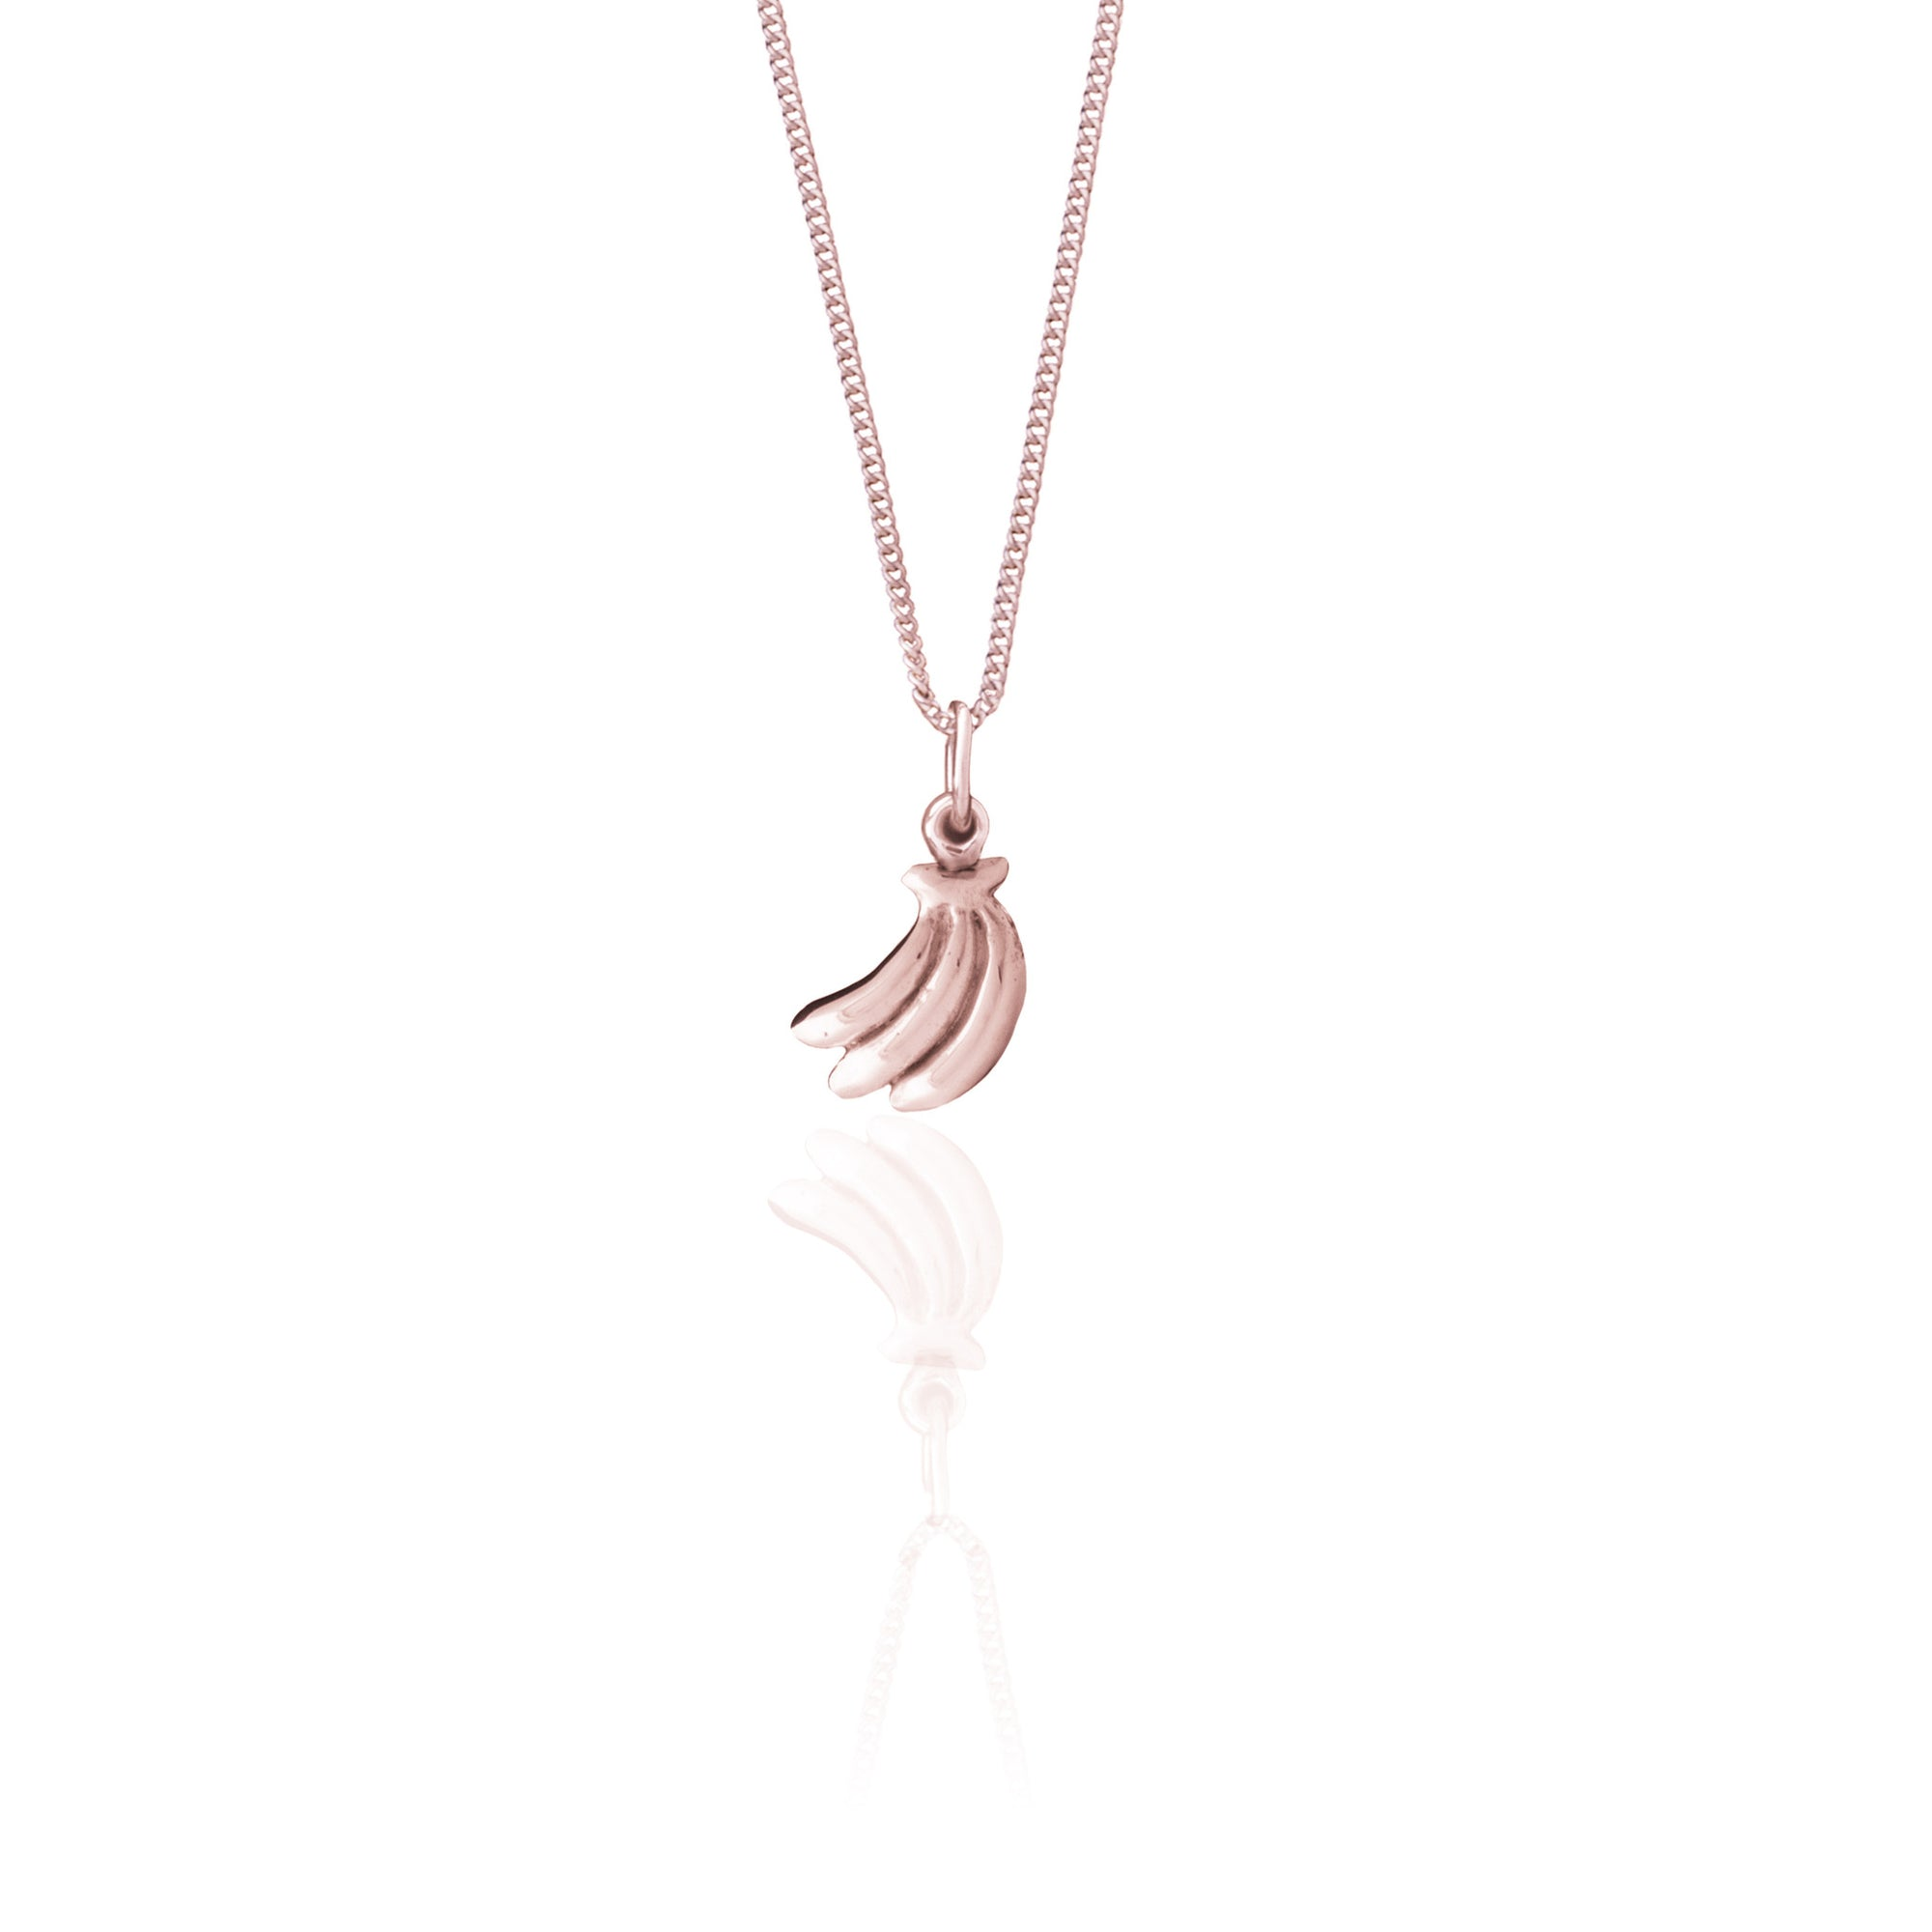 La Luna Rose Jewellery - You Drive me Bananas Charm - Rose Gold